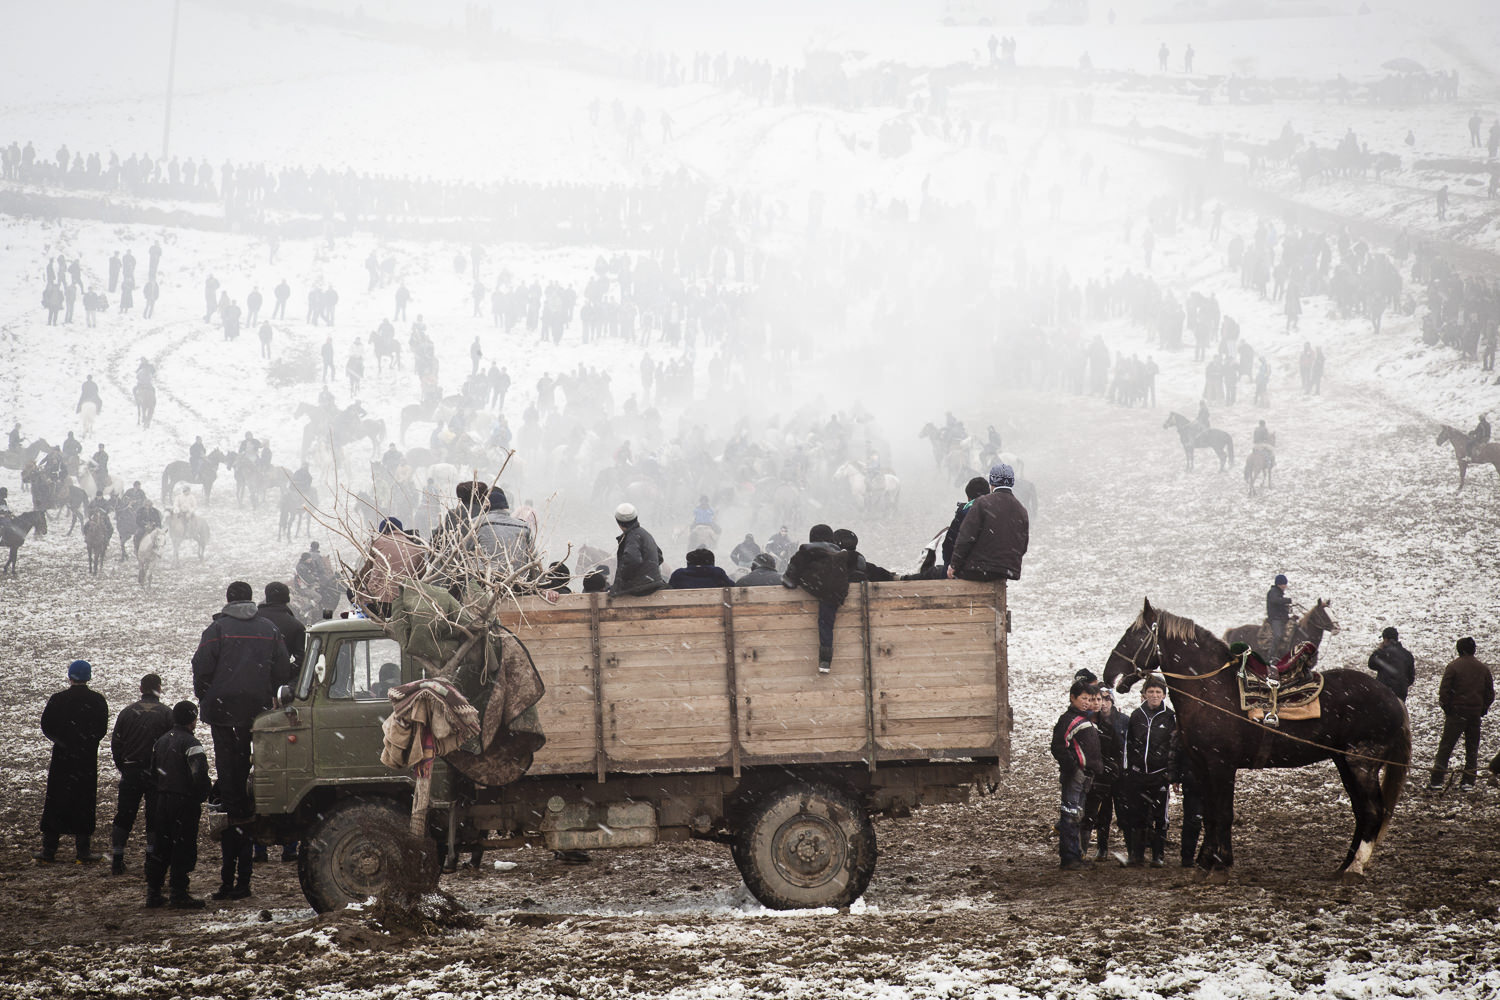 Spectators rally around a snowy buzkashi field. The truck in the foreground is both the prize truck, the announcer's truck and the holding pen for goats (buz) for the game.